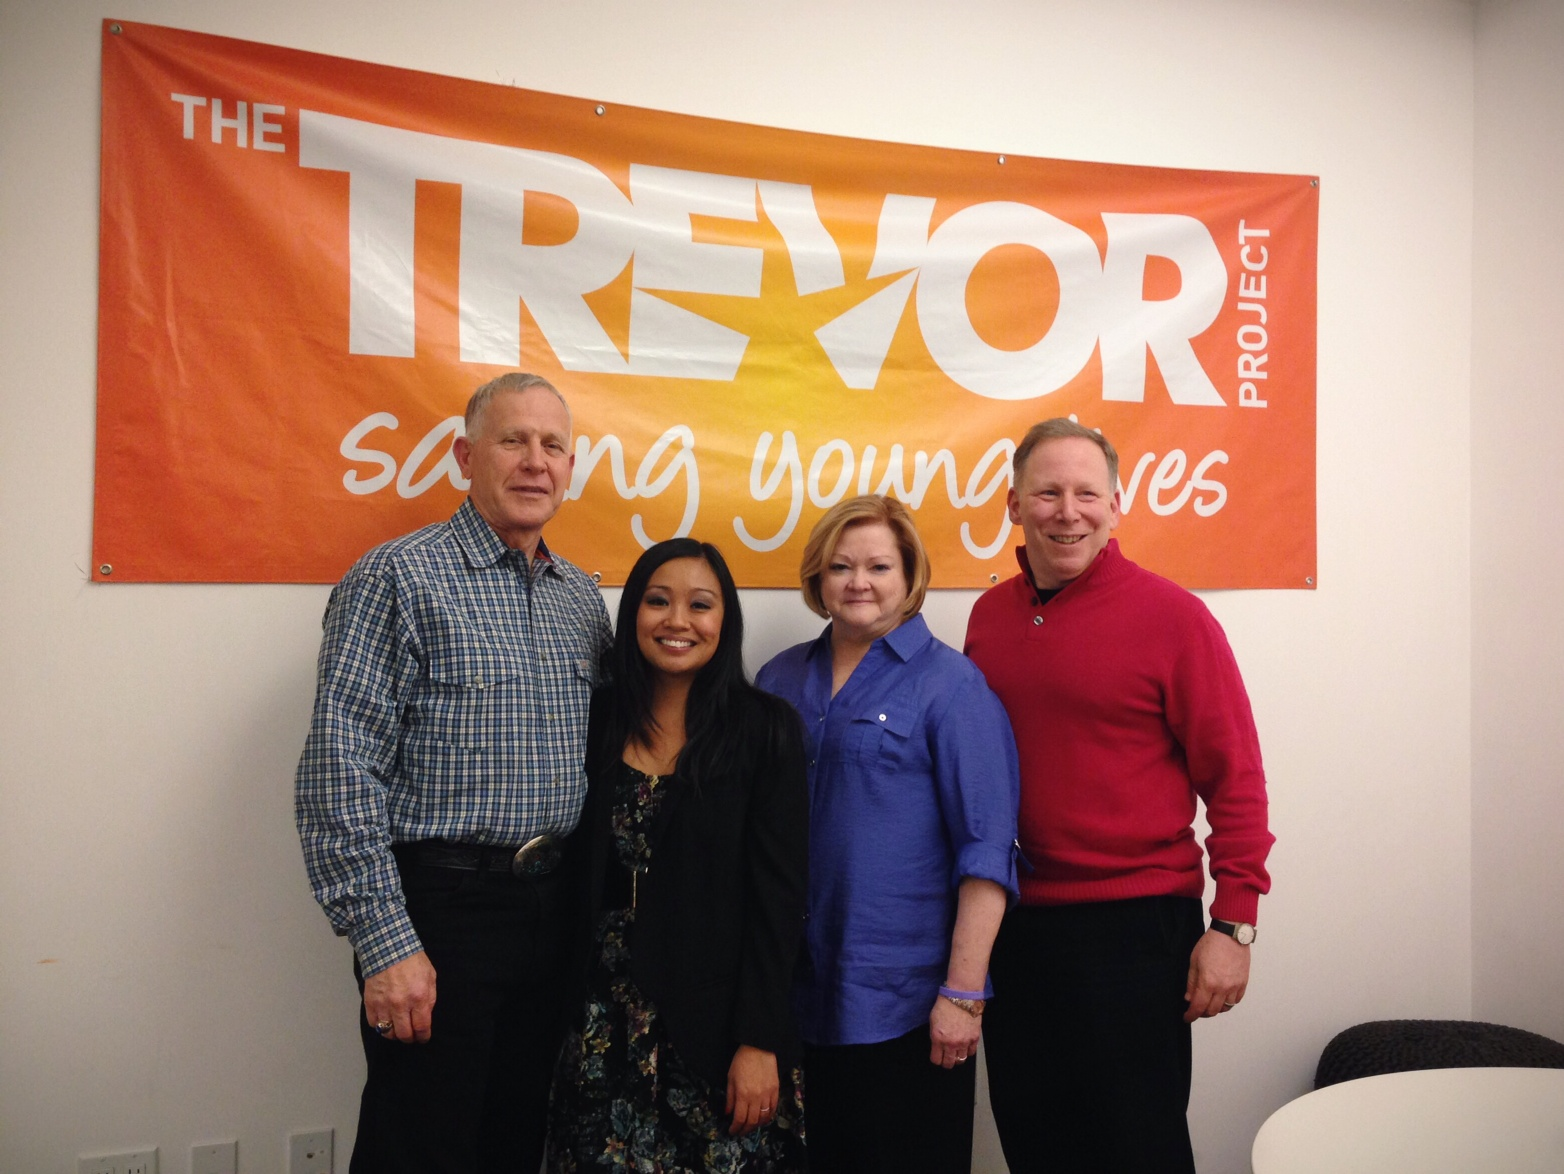 Trevor Project Headquarters with Judy & Dennis Shepard